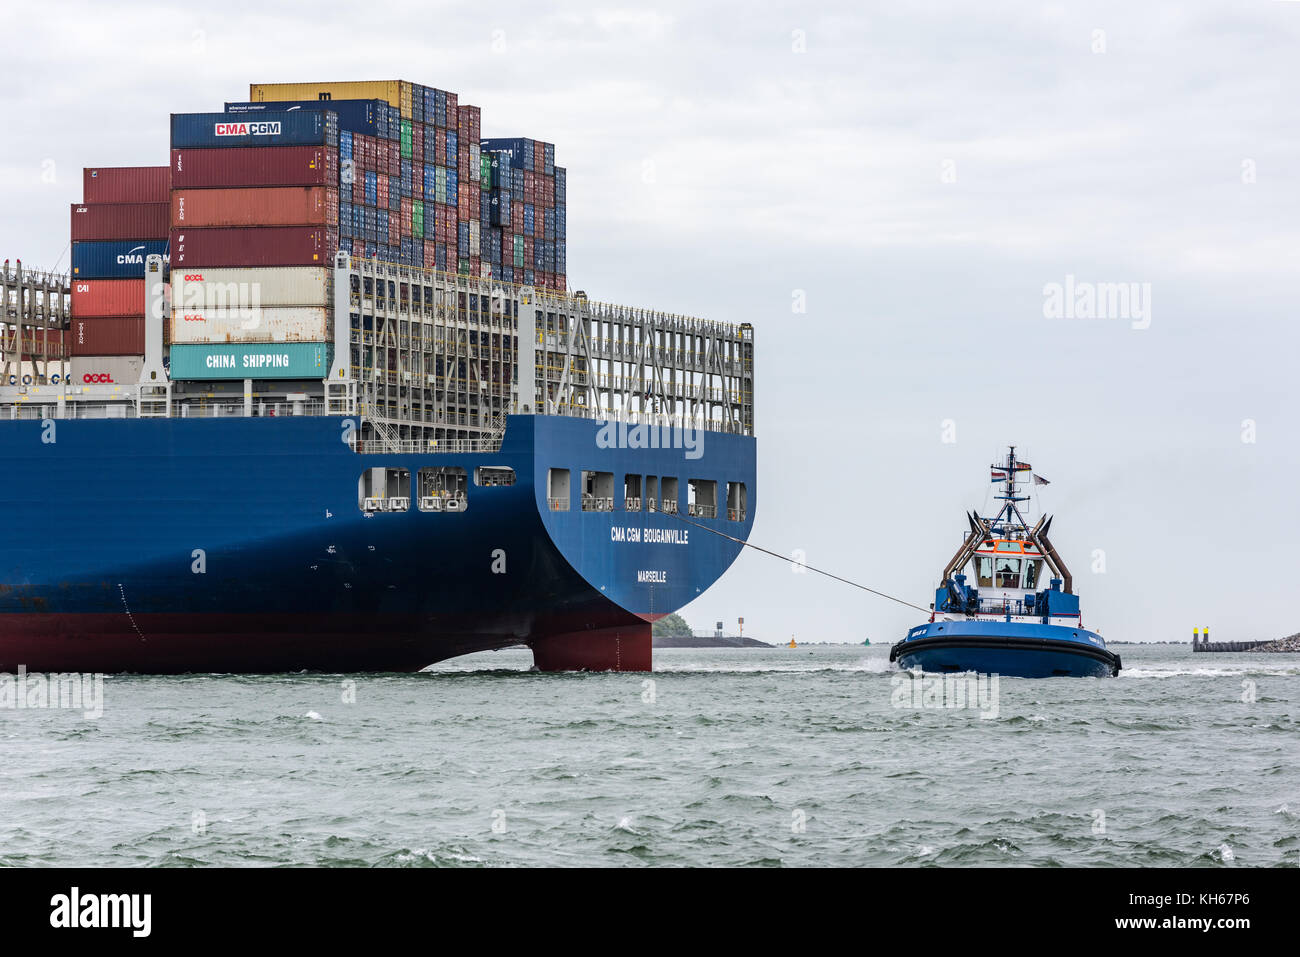 ROTTERDAM, THE NETHERLANDS - JUNE 12, 2017: A tug boat brings the ultra large container ship CMA CGM Bougainville Stock Photo